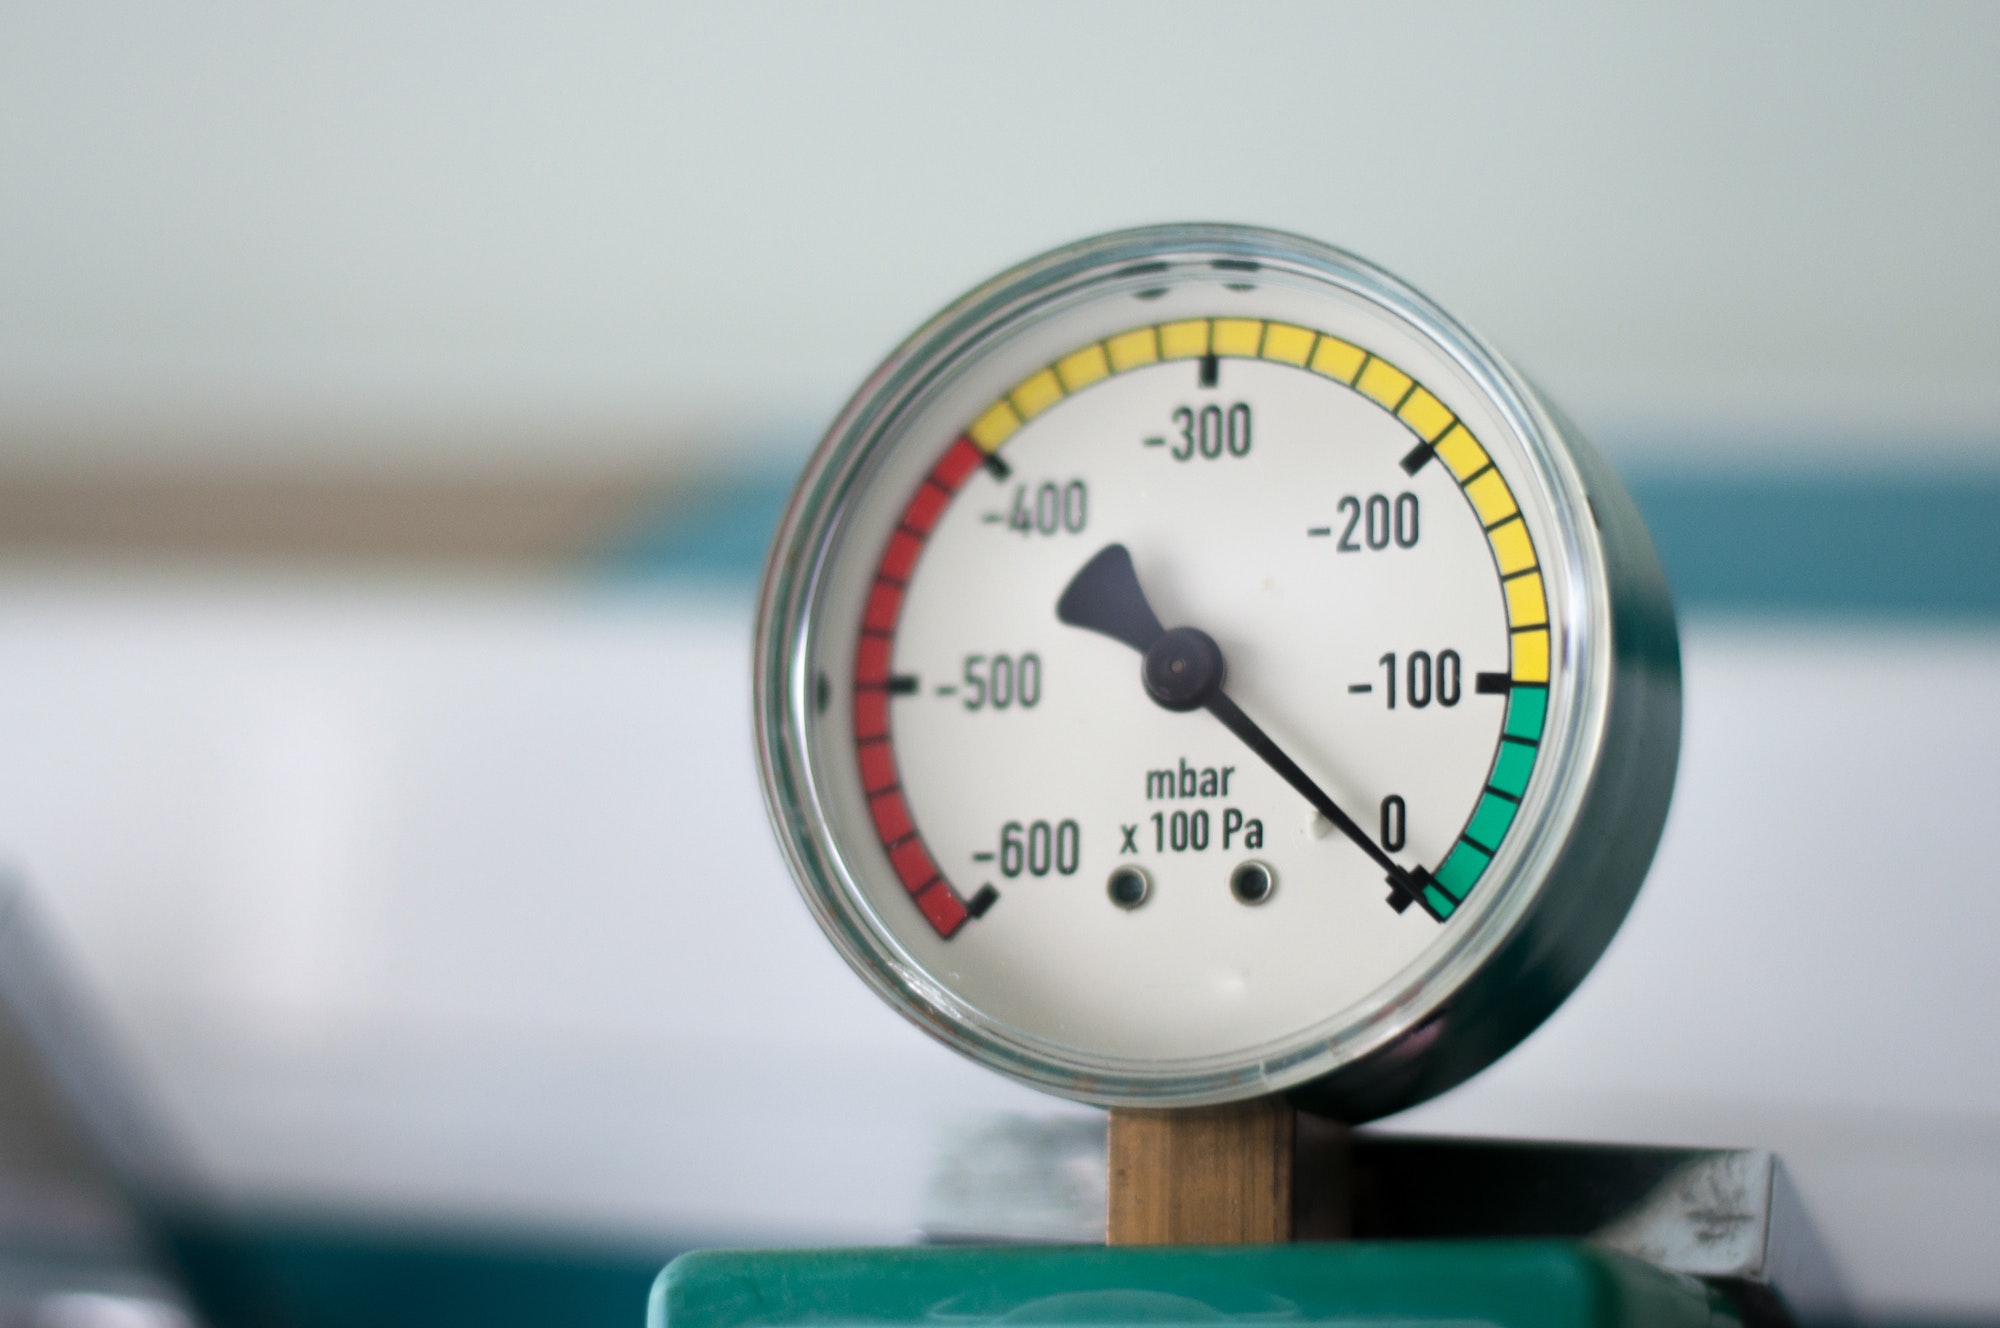 What Should My Blood Pressure Be